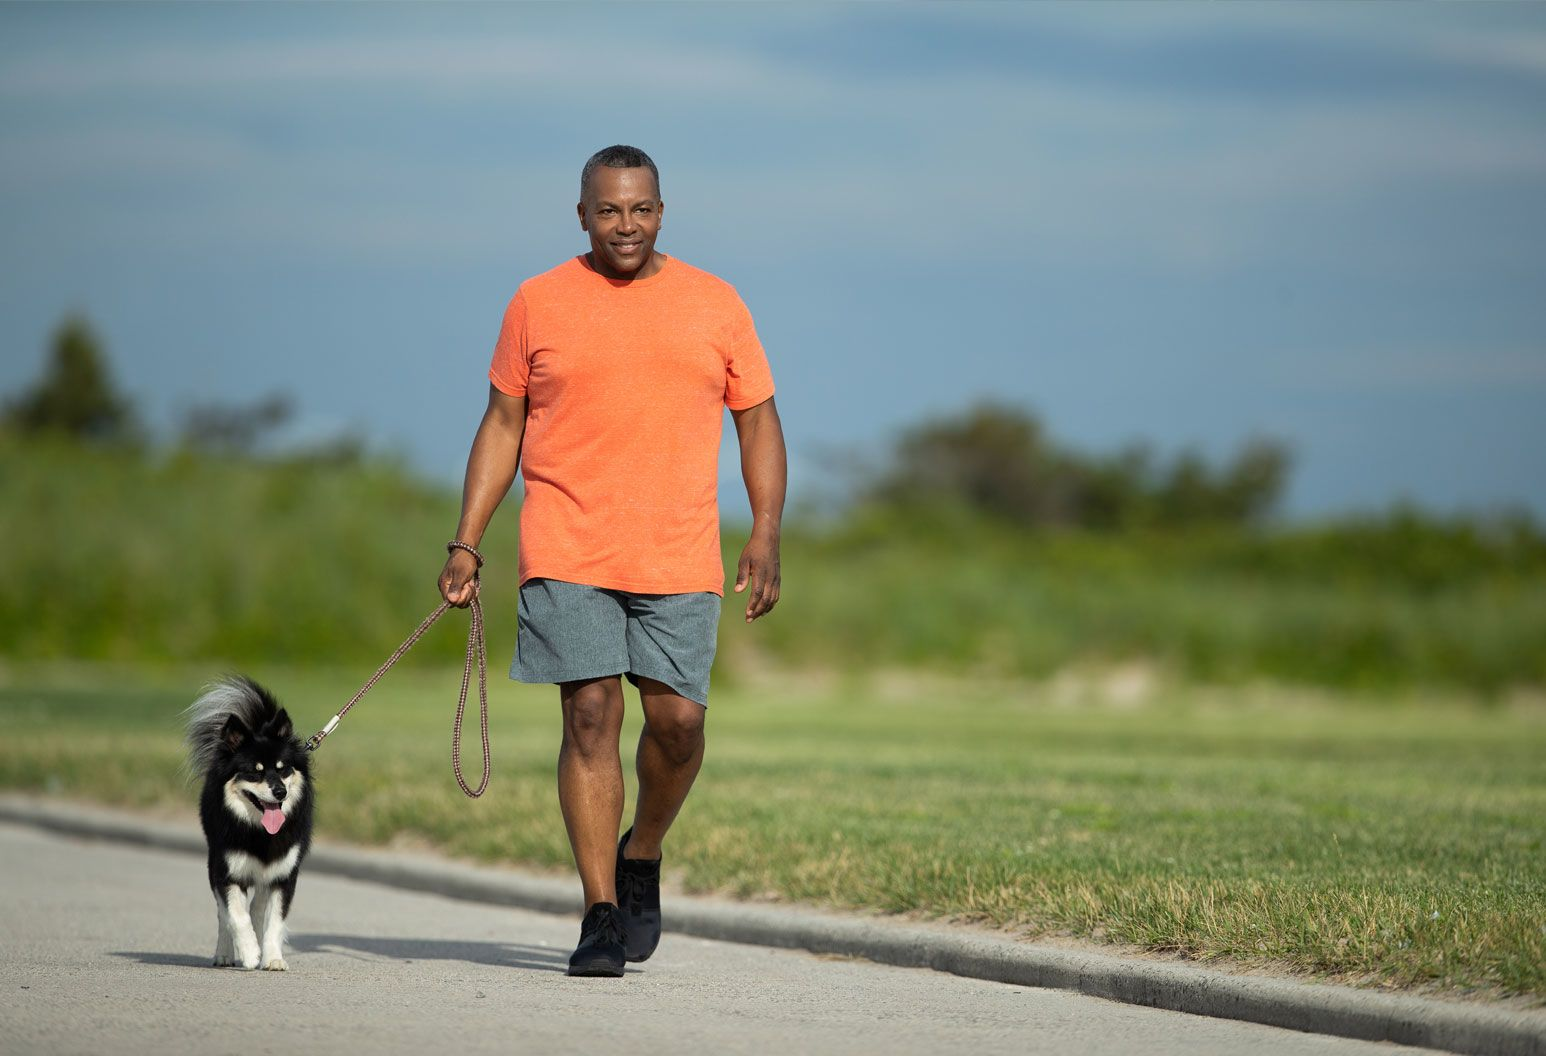 A middle aged male wearing an orange t-shirt walks with his dog at the beach.